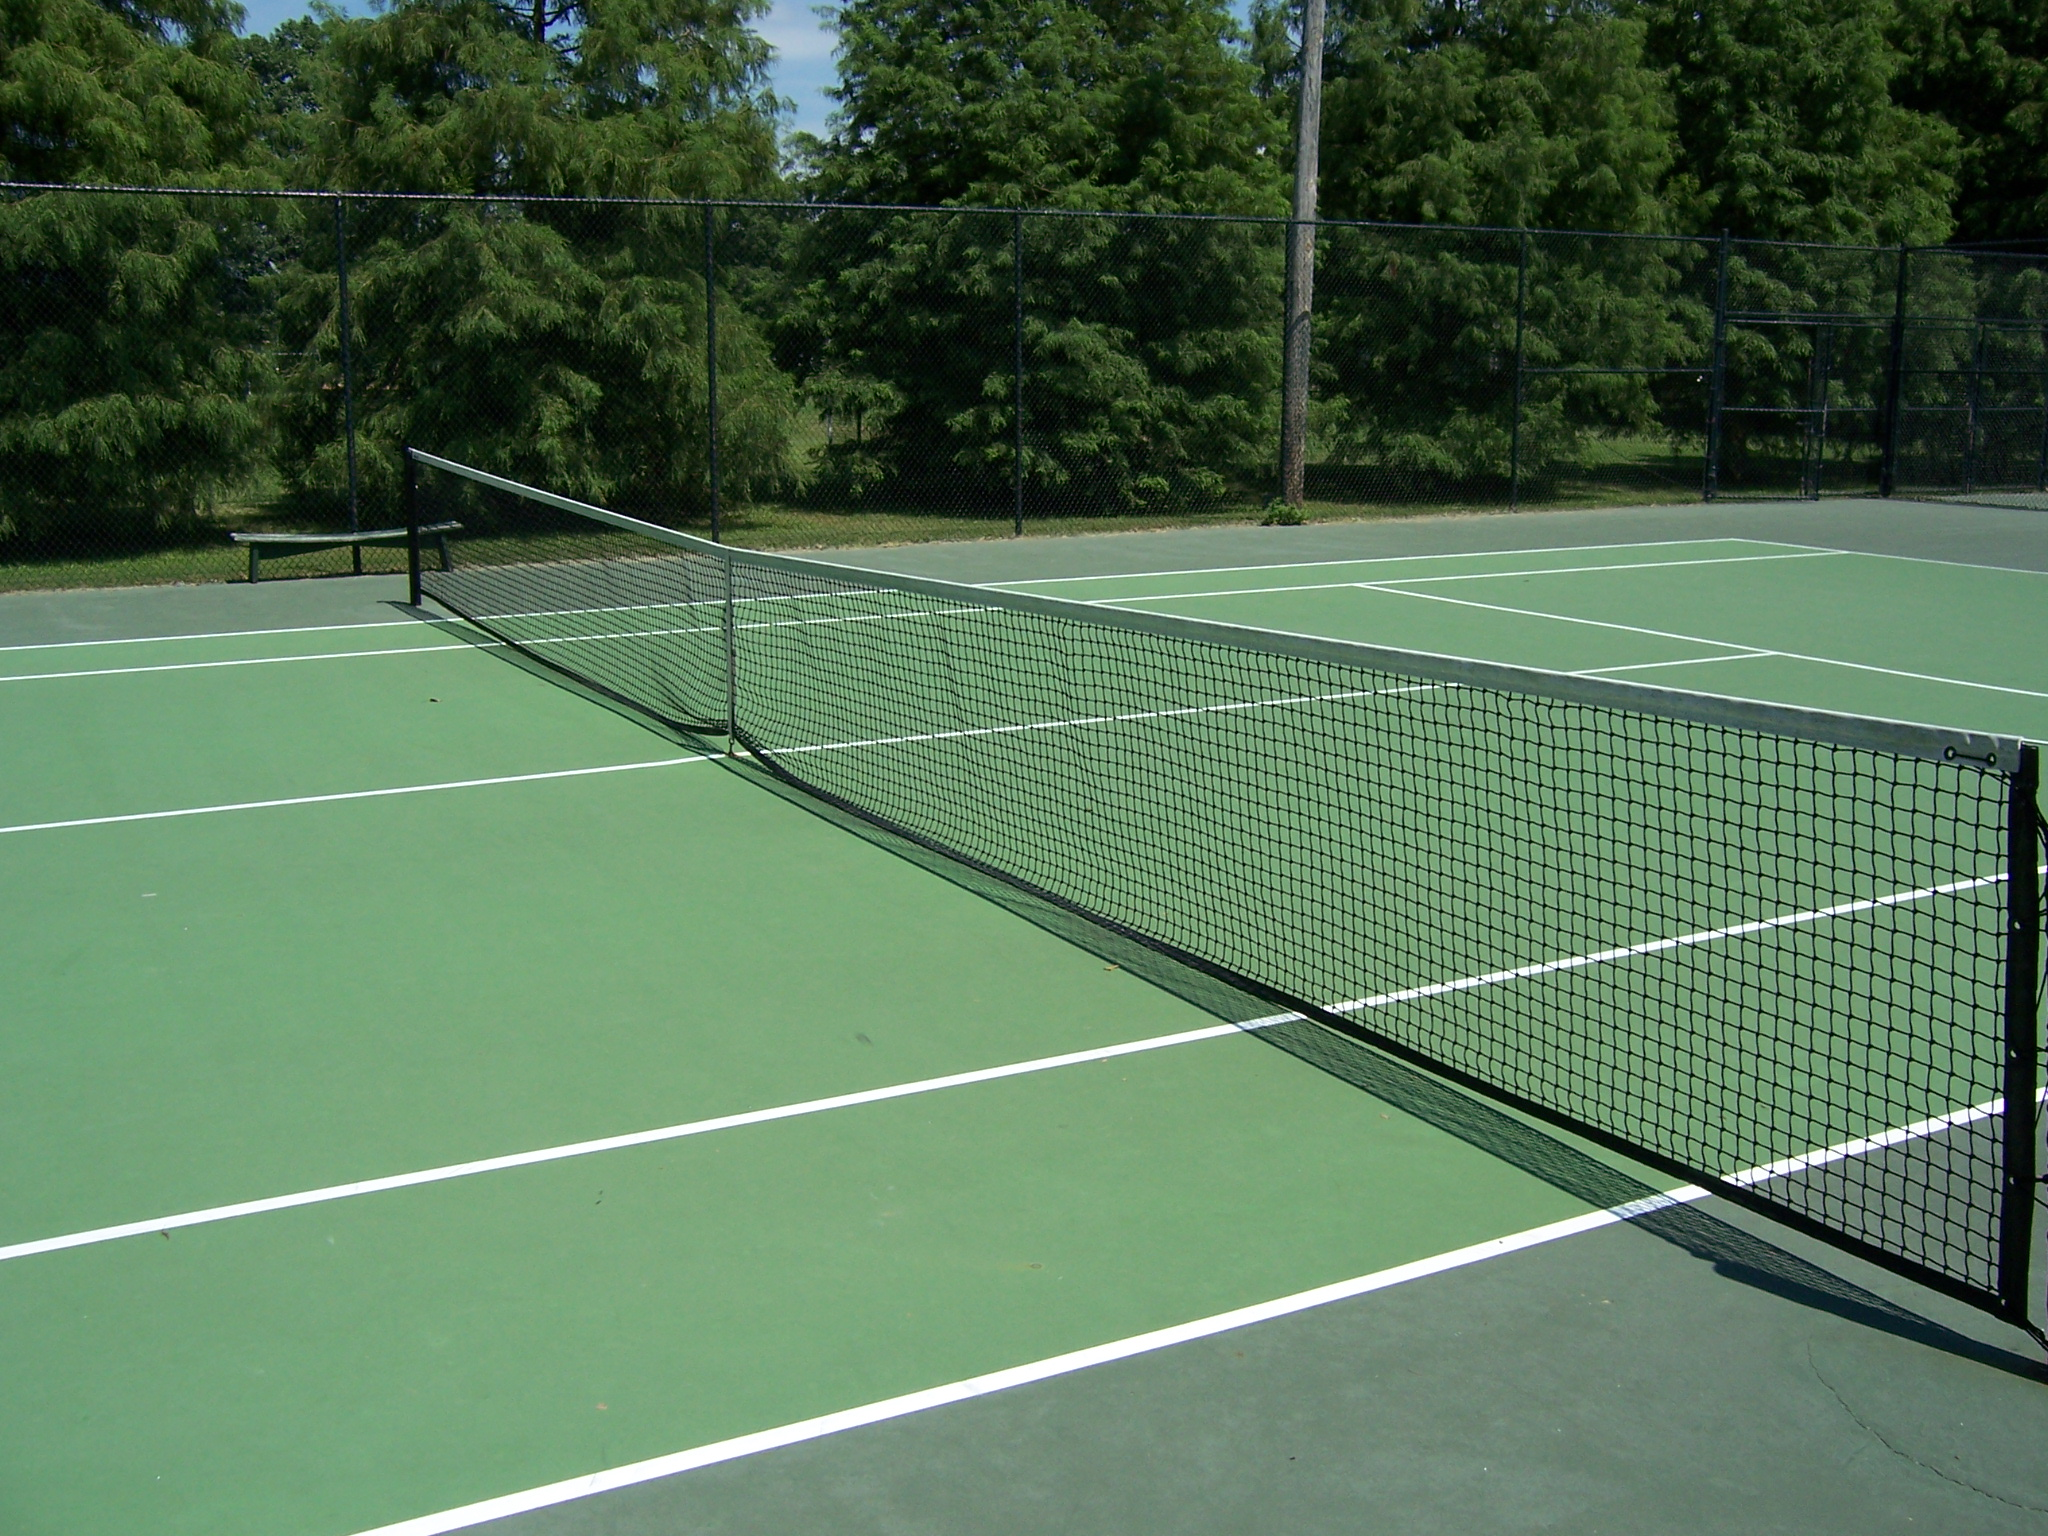 Photo of a tennis court